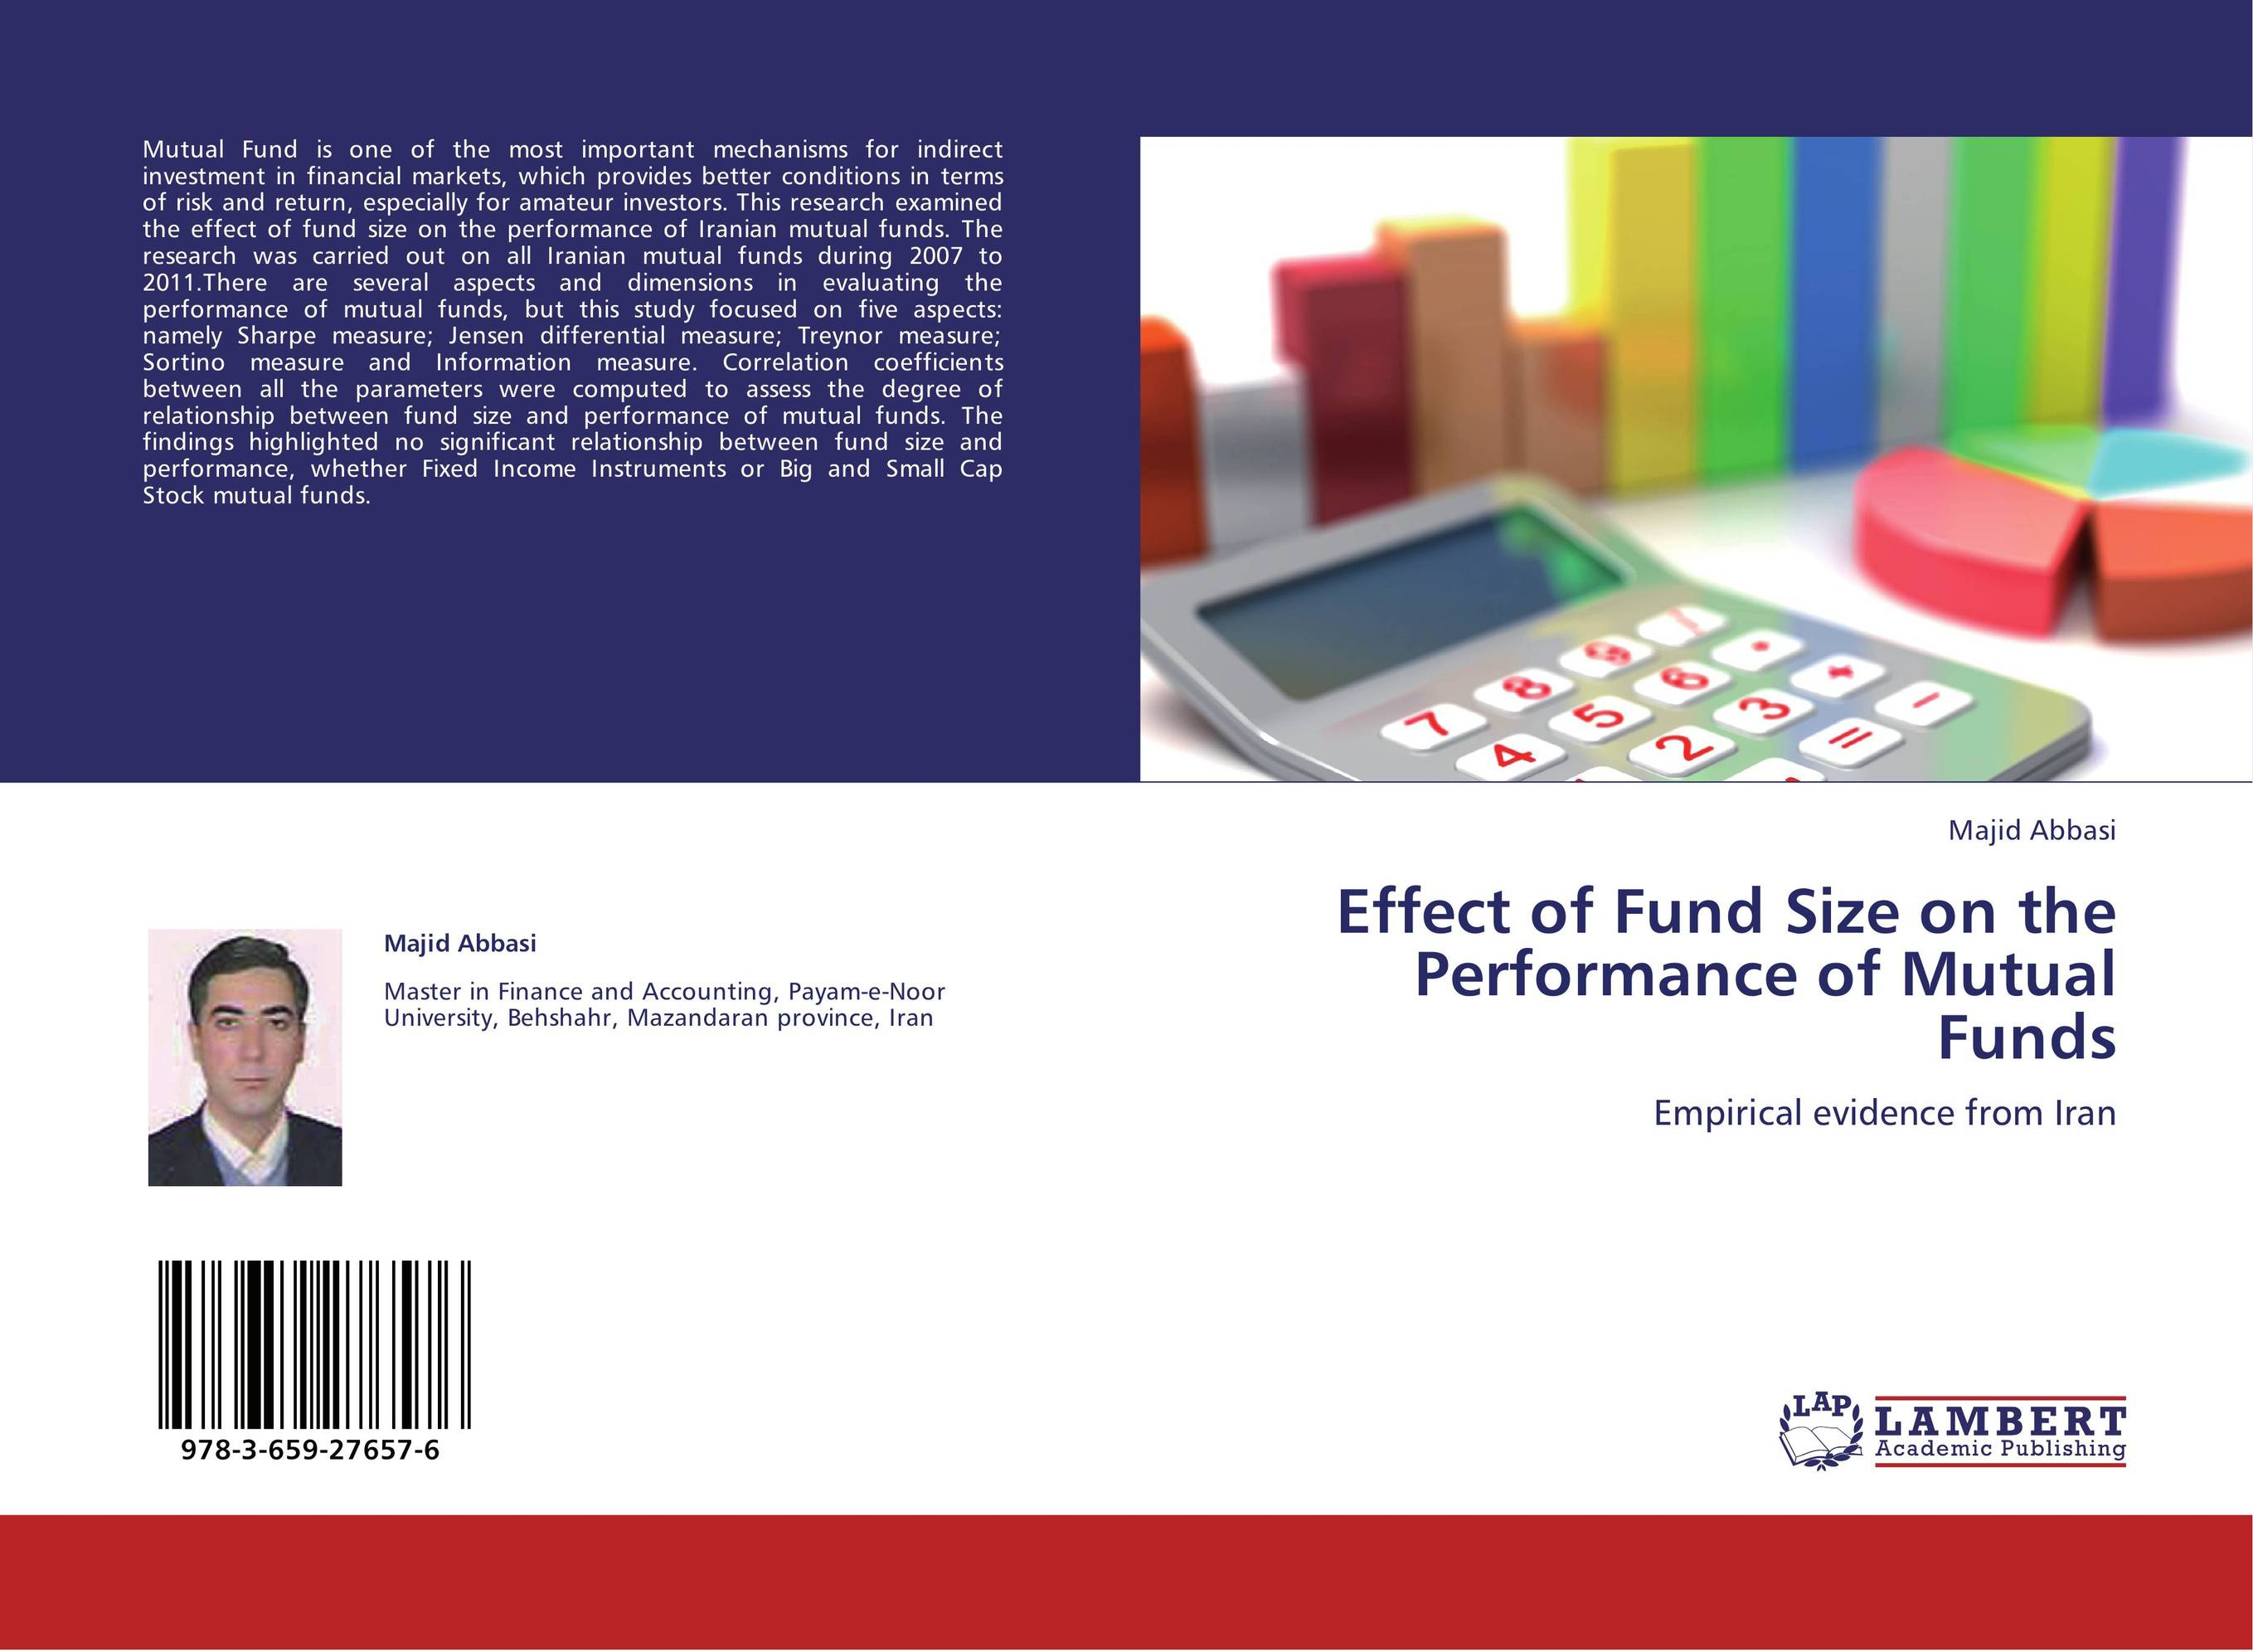 thesis on performance evaluation of mutual funds in india The performance evaluation and persistence of a type mutual funds in turkey a thesis submitted to the graduate school of social sciences of middle east technical.